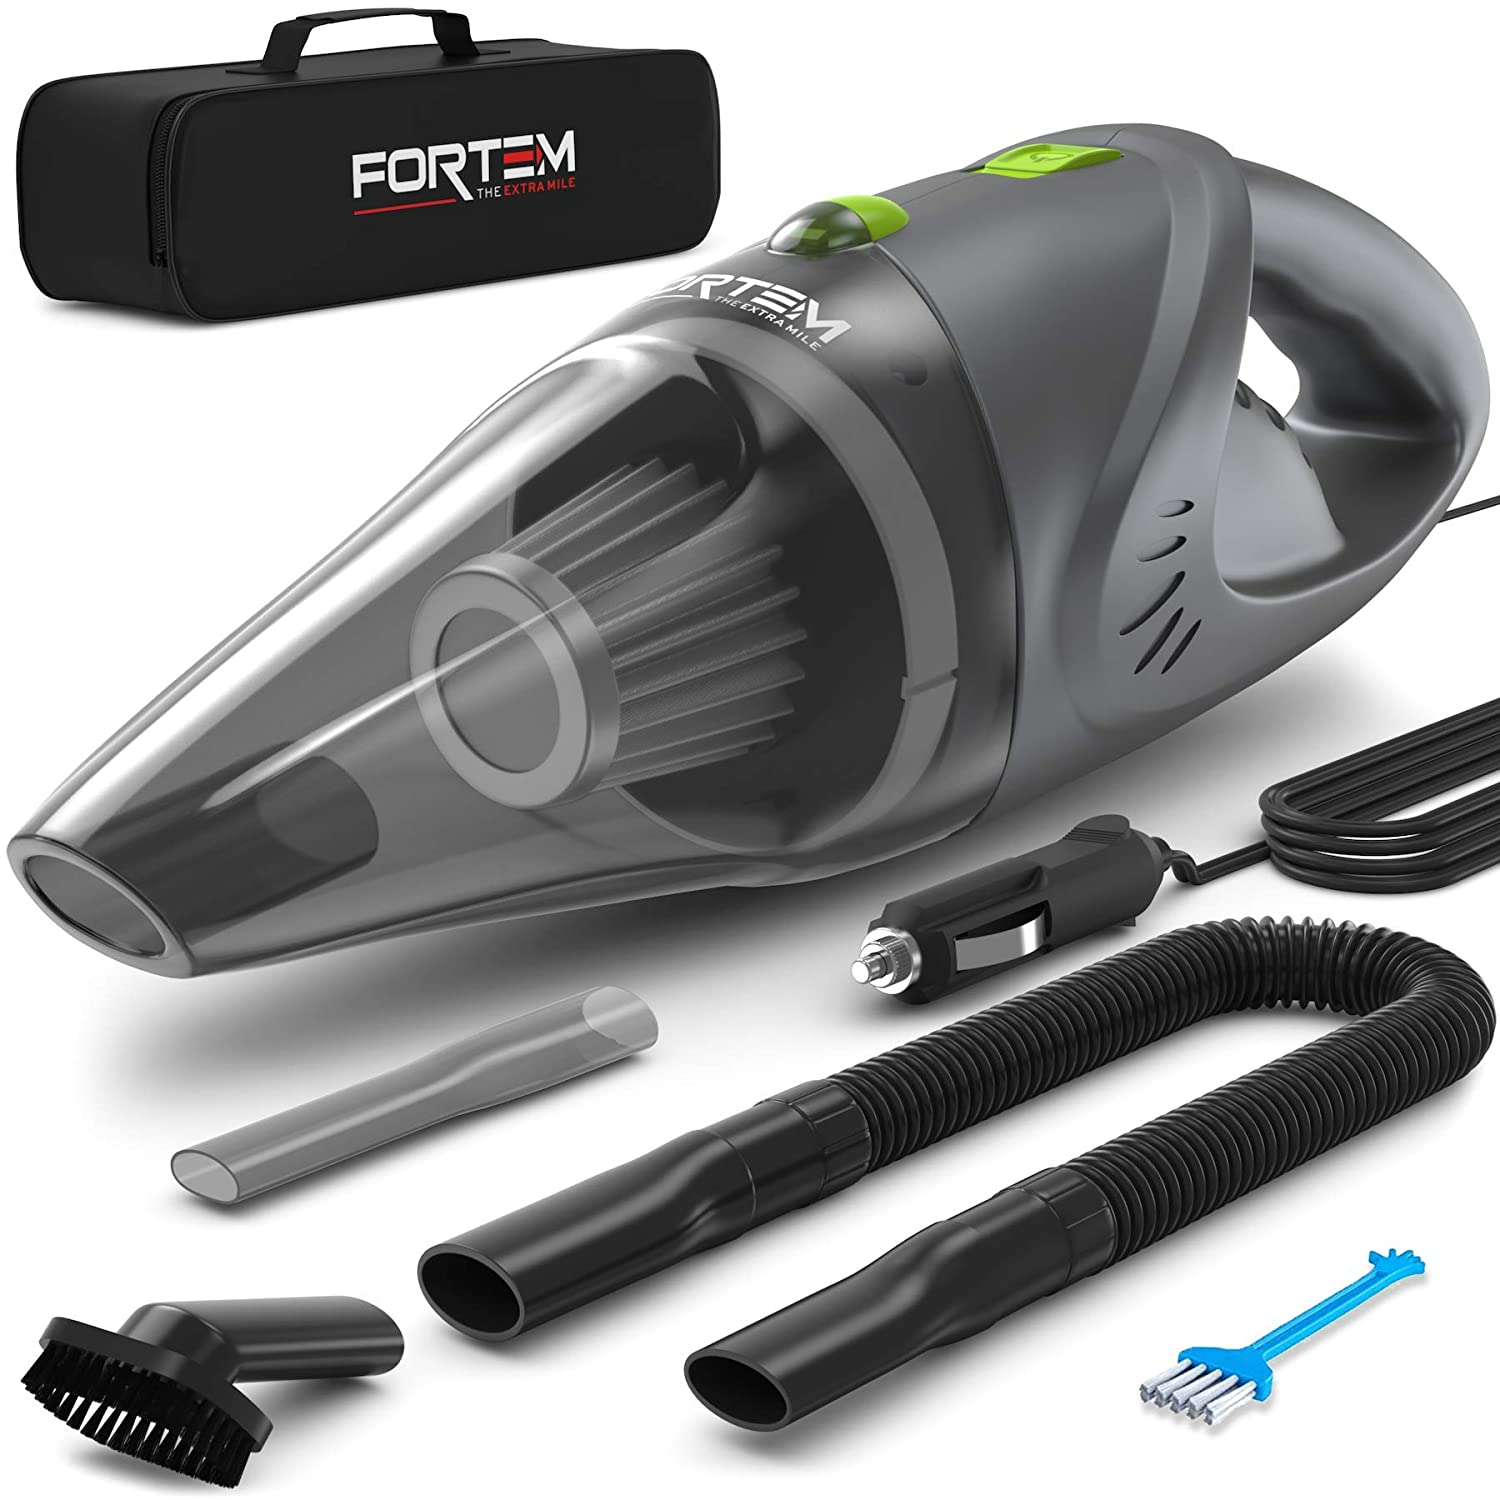 Car Vacuum Cleaner by FORTEM (120W) - 4500 Pa Suction Power - DC 12 Volt Handheld Portable Heavy Duty Design - 16 Foot Power Cord - 1 Steel Washable Filter - 3 Attachments - Carry Bag